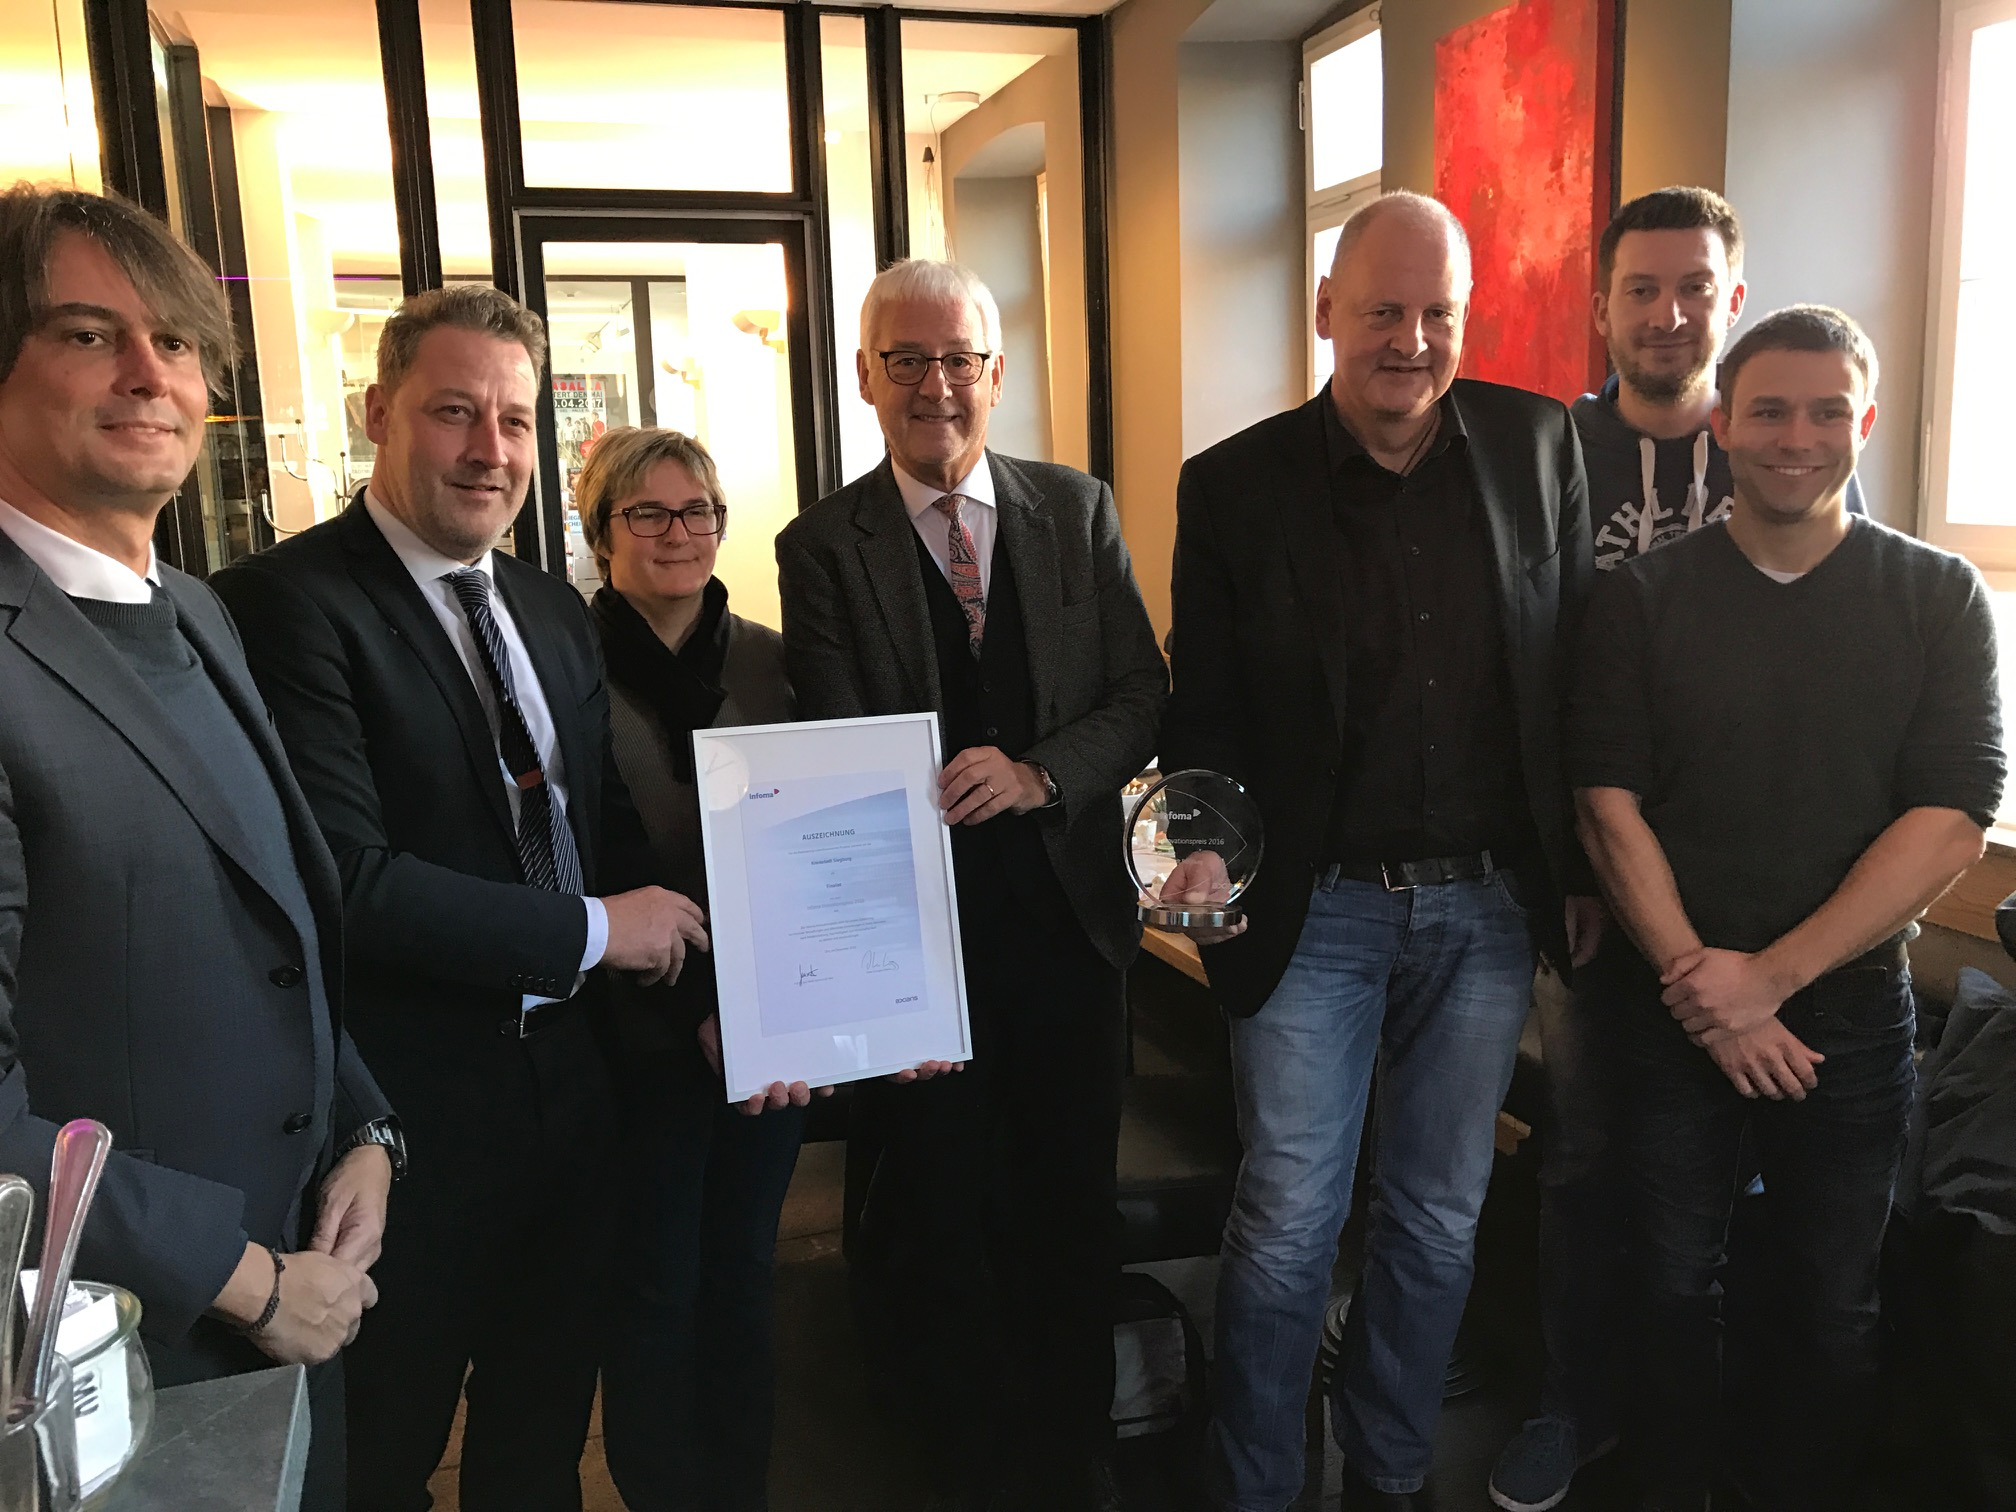 City of Siegburg: Finalist for the Axians Infoma Innovation Prize with electronic payment processes